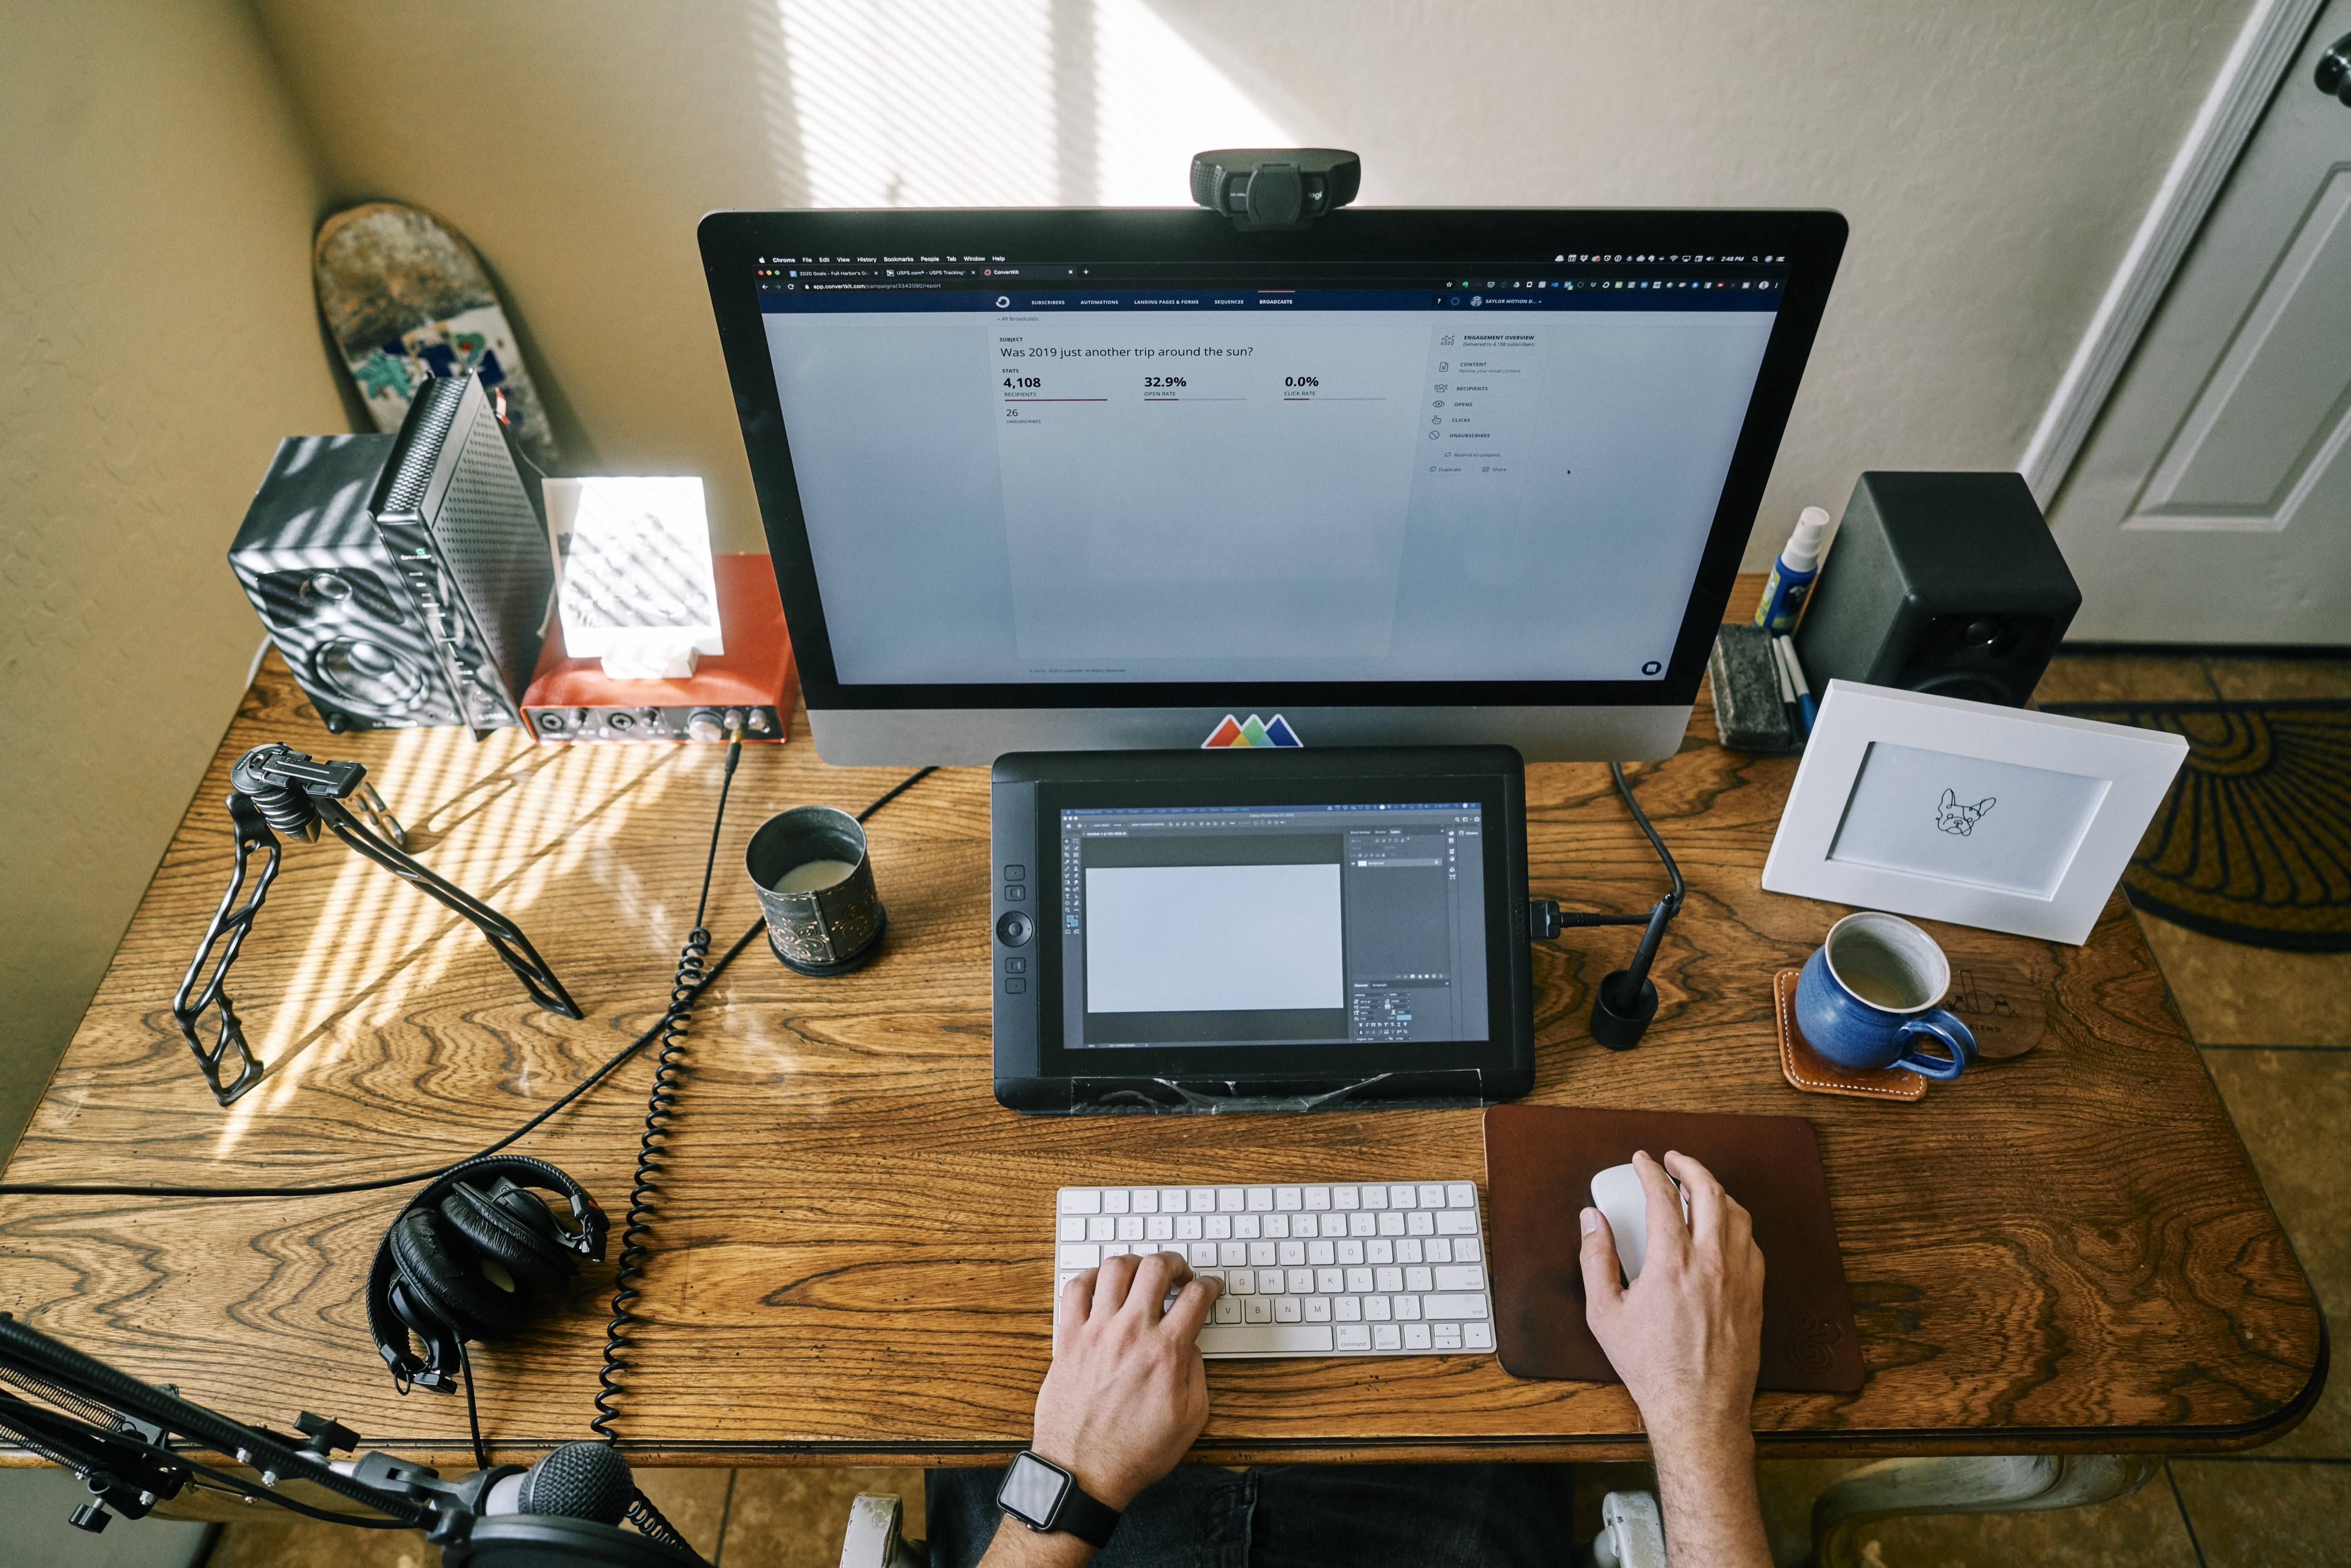 Homeoffice space with laptop and accessories